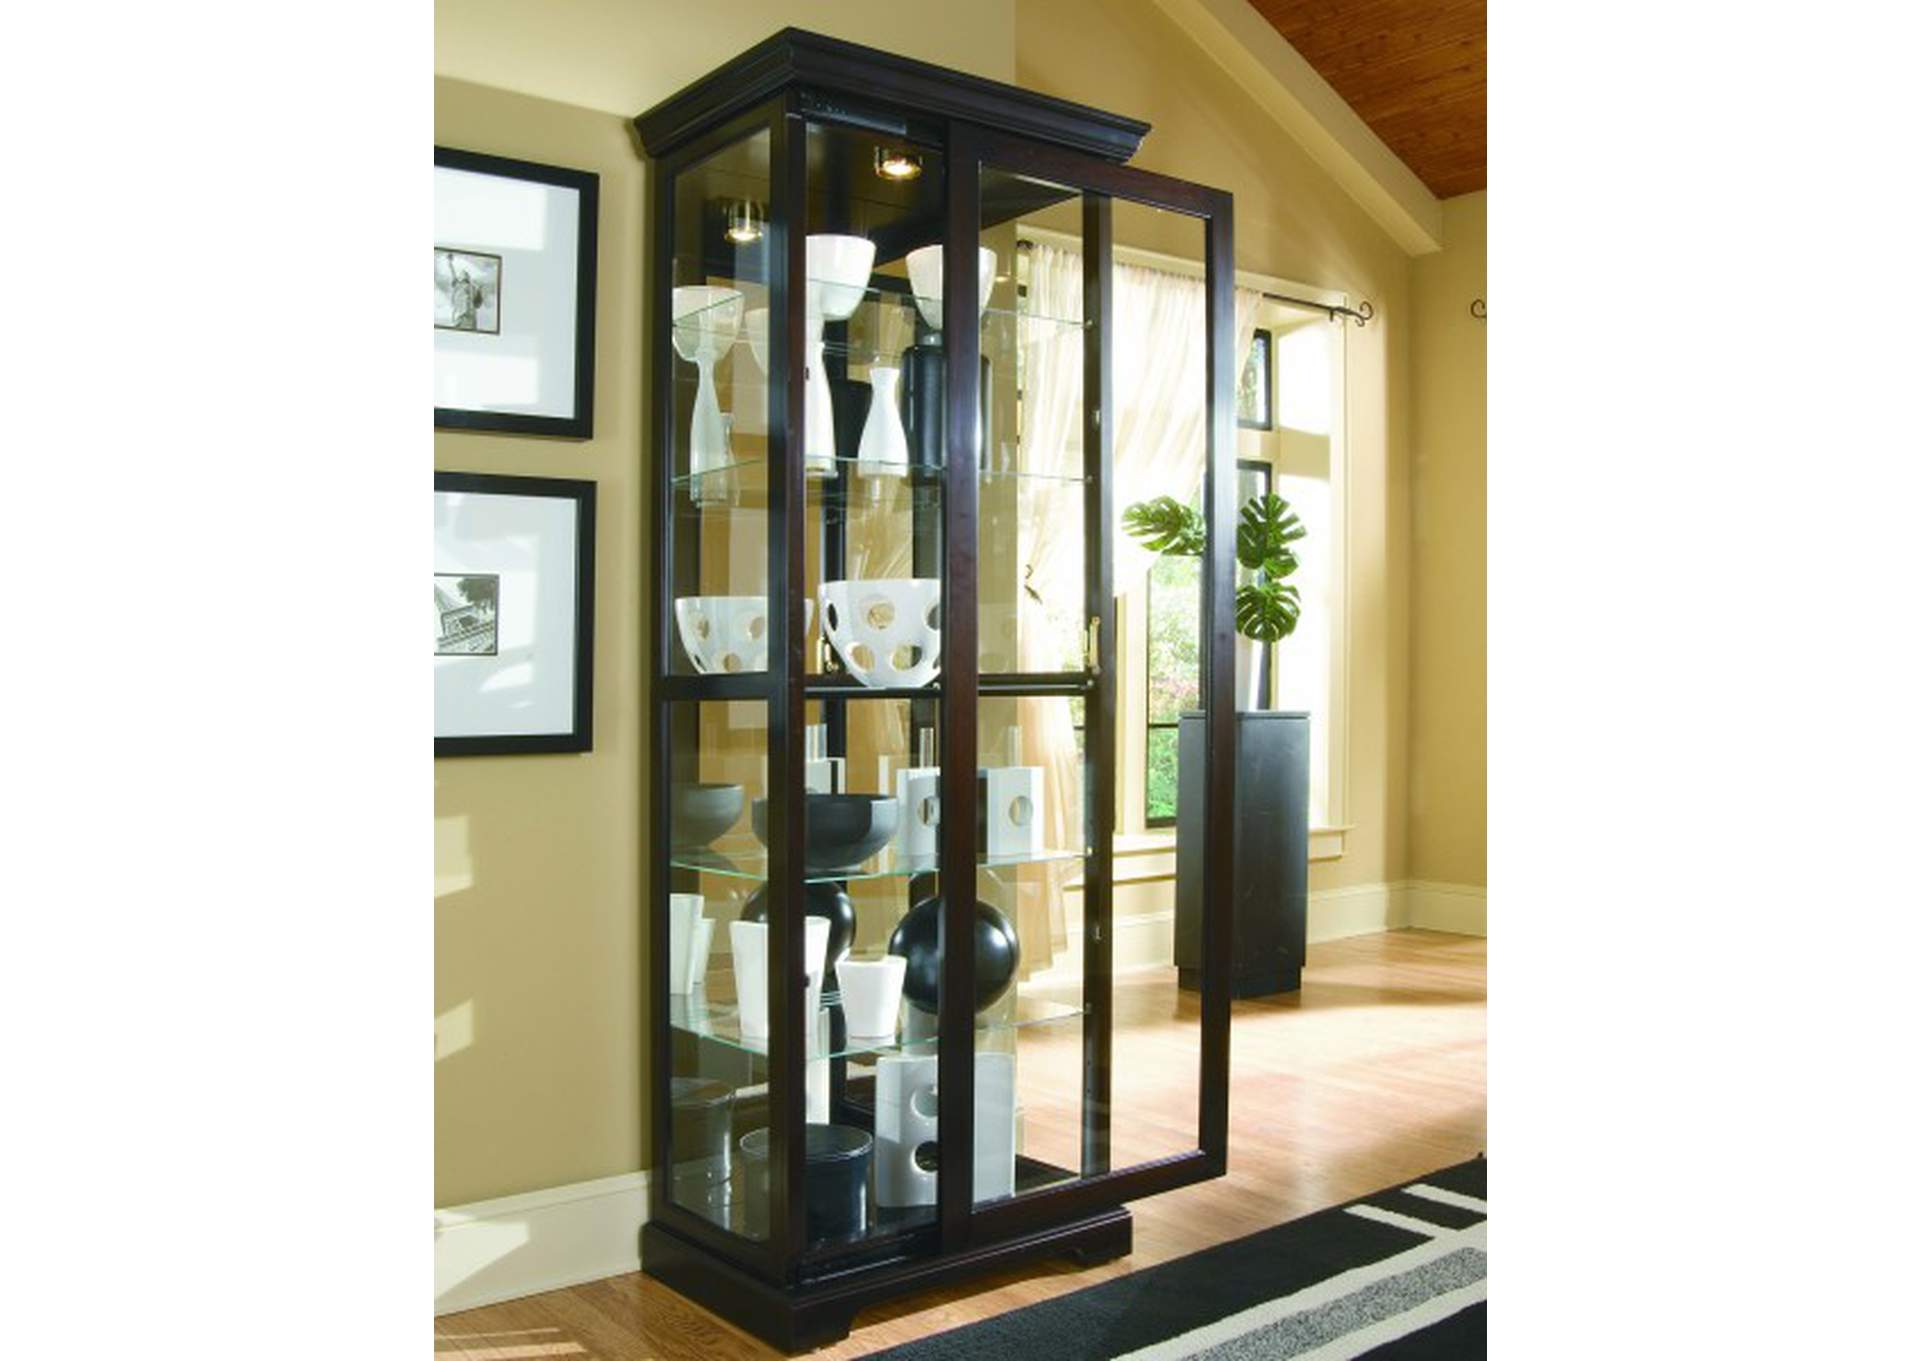 Tall 5 Shelf Curio Cabinet with Sliding Door in Cherry Brown,Pulaski Furniture